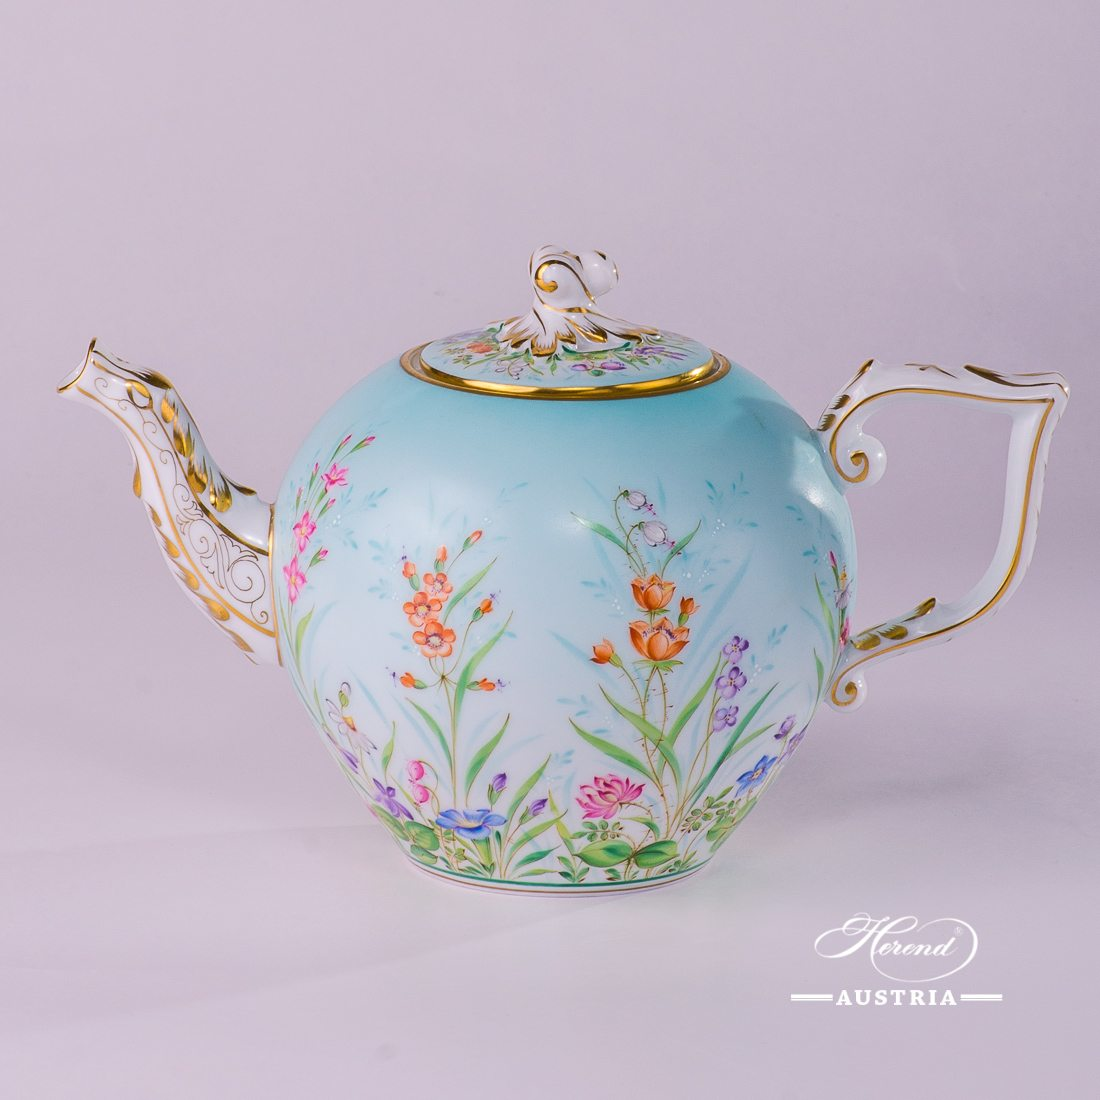 Four Seasons Tea Pot - 20605-0-06 QS - Herend Porcelain